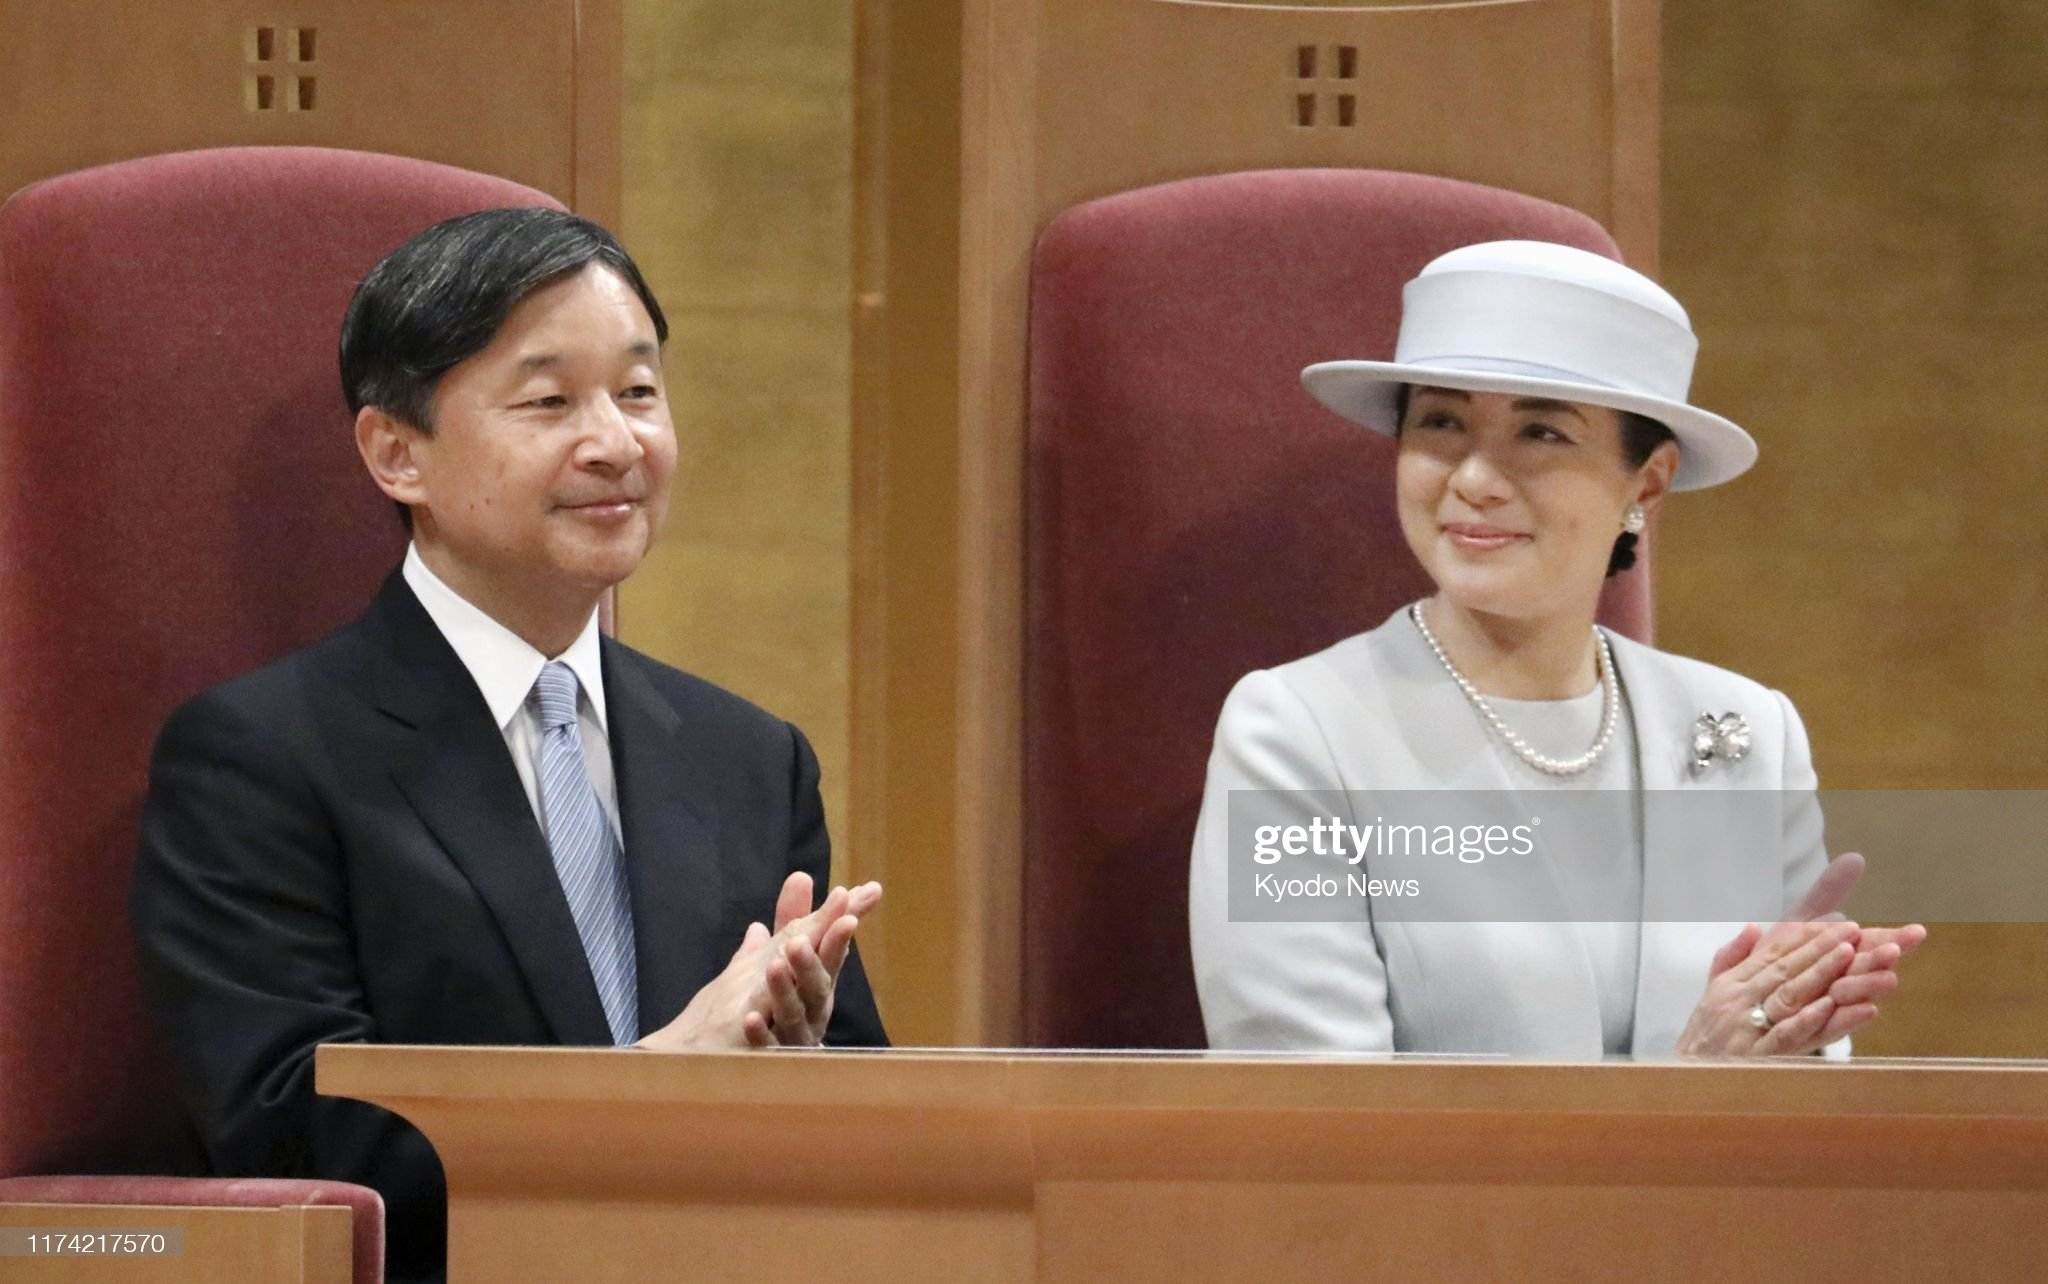 japanese-emperor-naruhito-and-empress-masako-attend-a-ceremony-the-picture-id1174217570